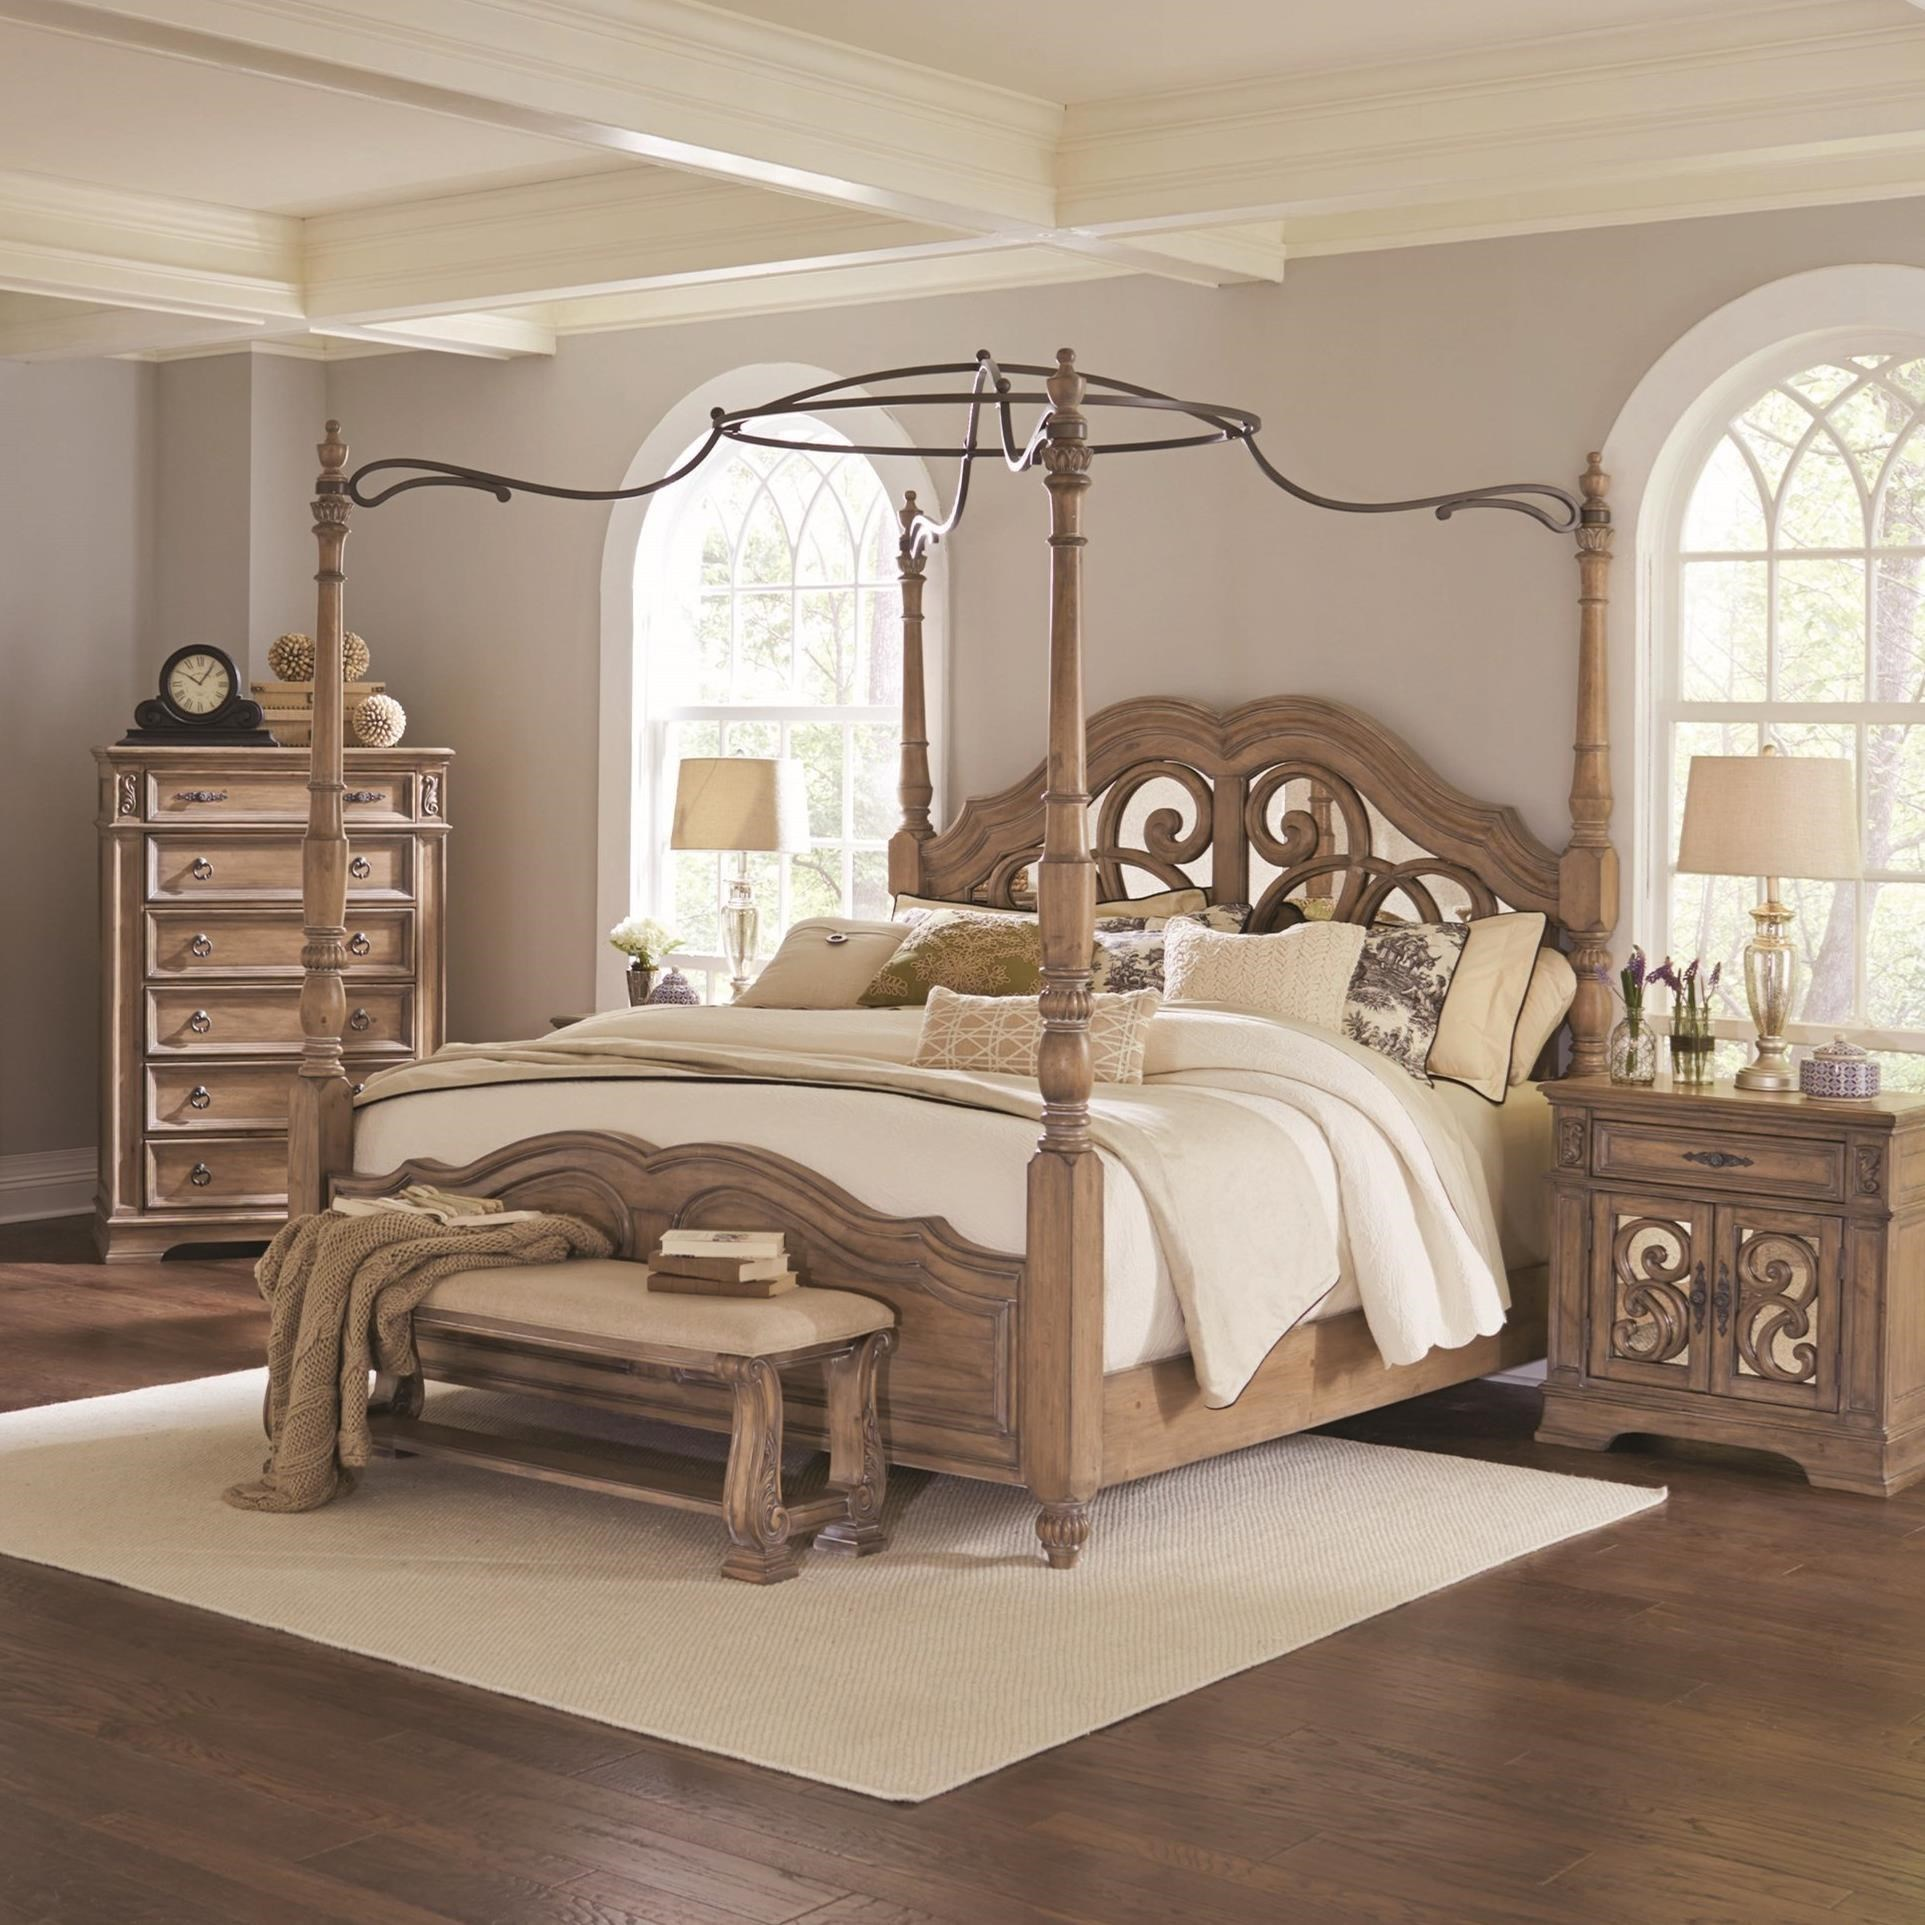 Coaster Ilana King Canopy Bed With Mirror Back Headboard